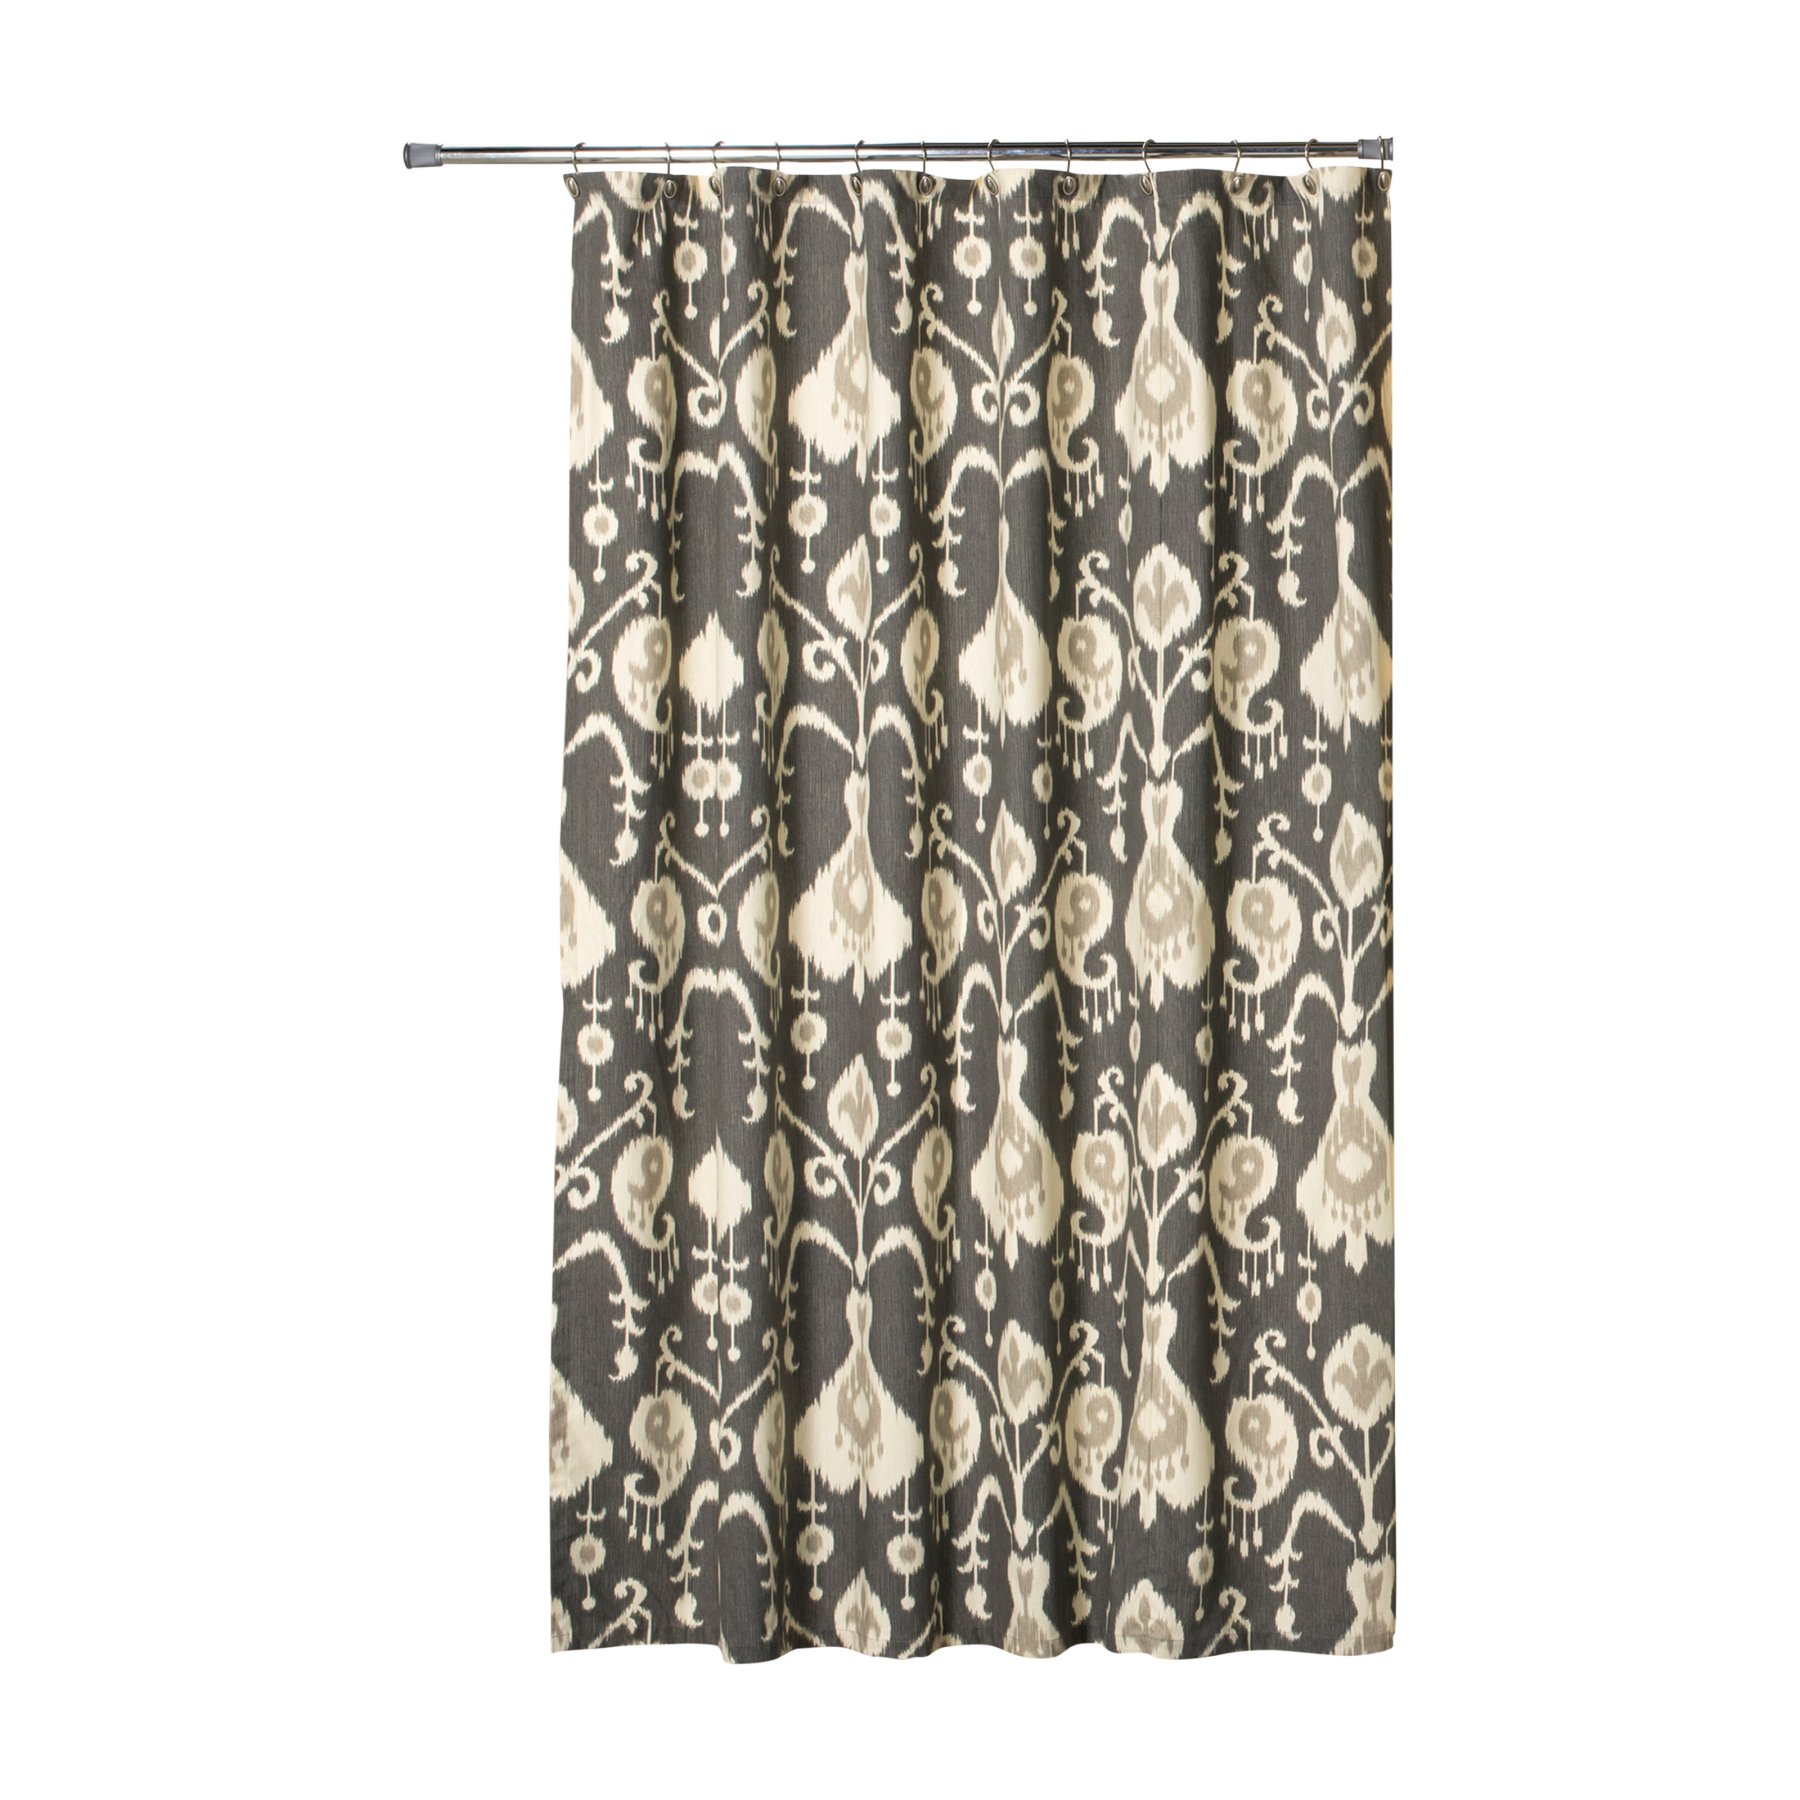 Thomasville At Home Salazar Cotton Extra Long Shower Curtain